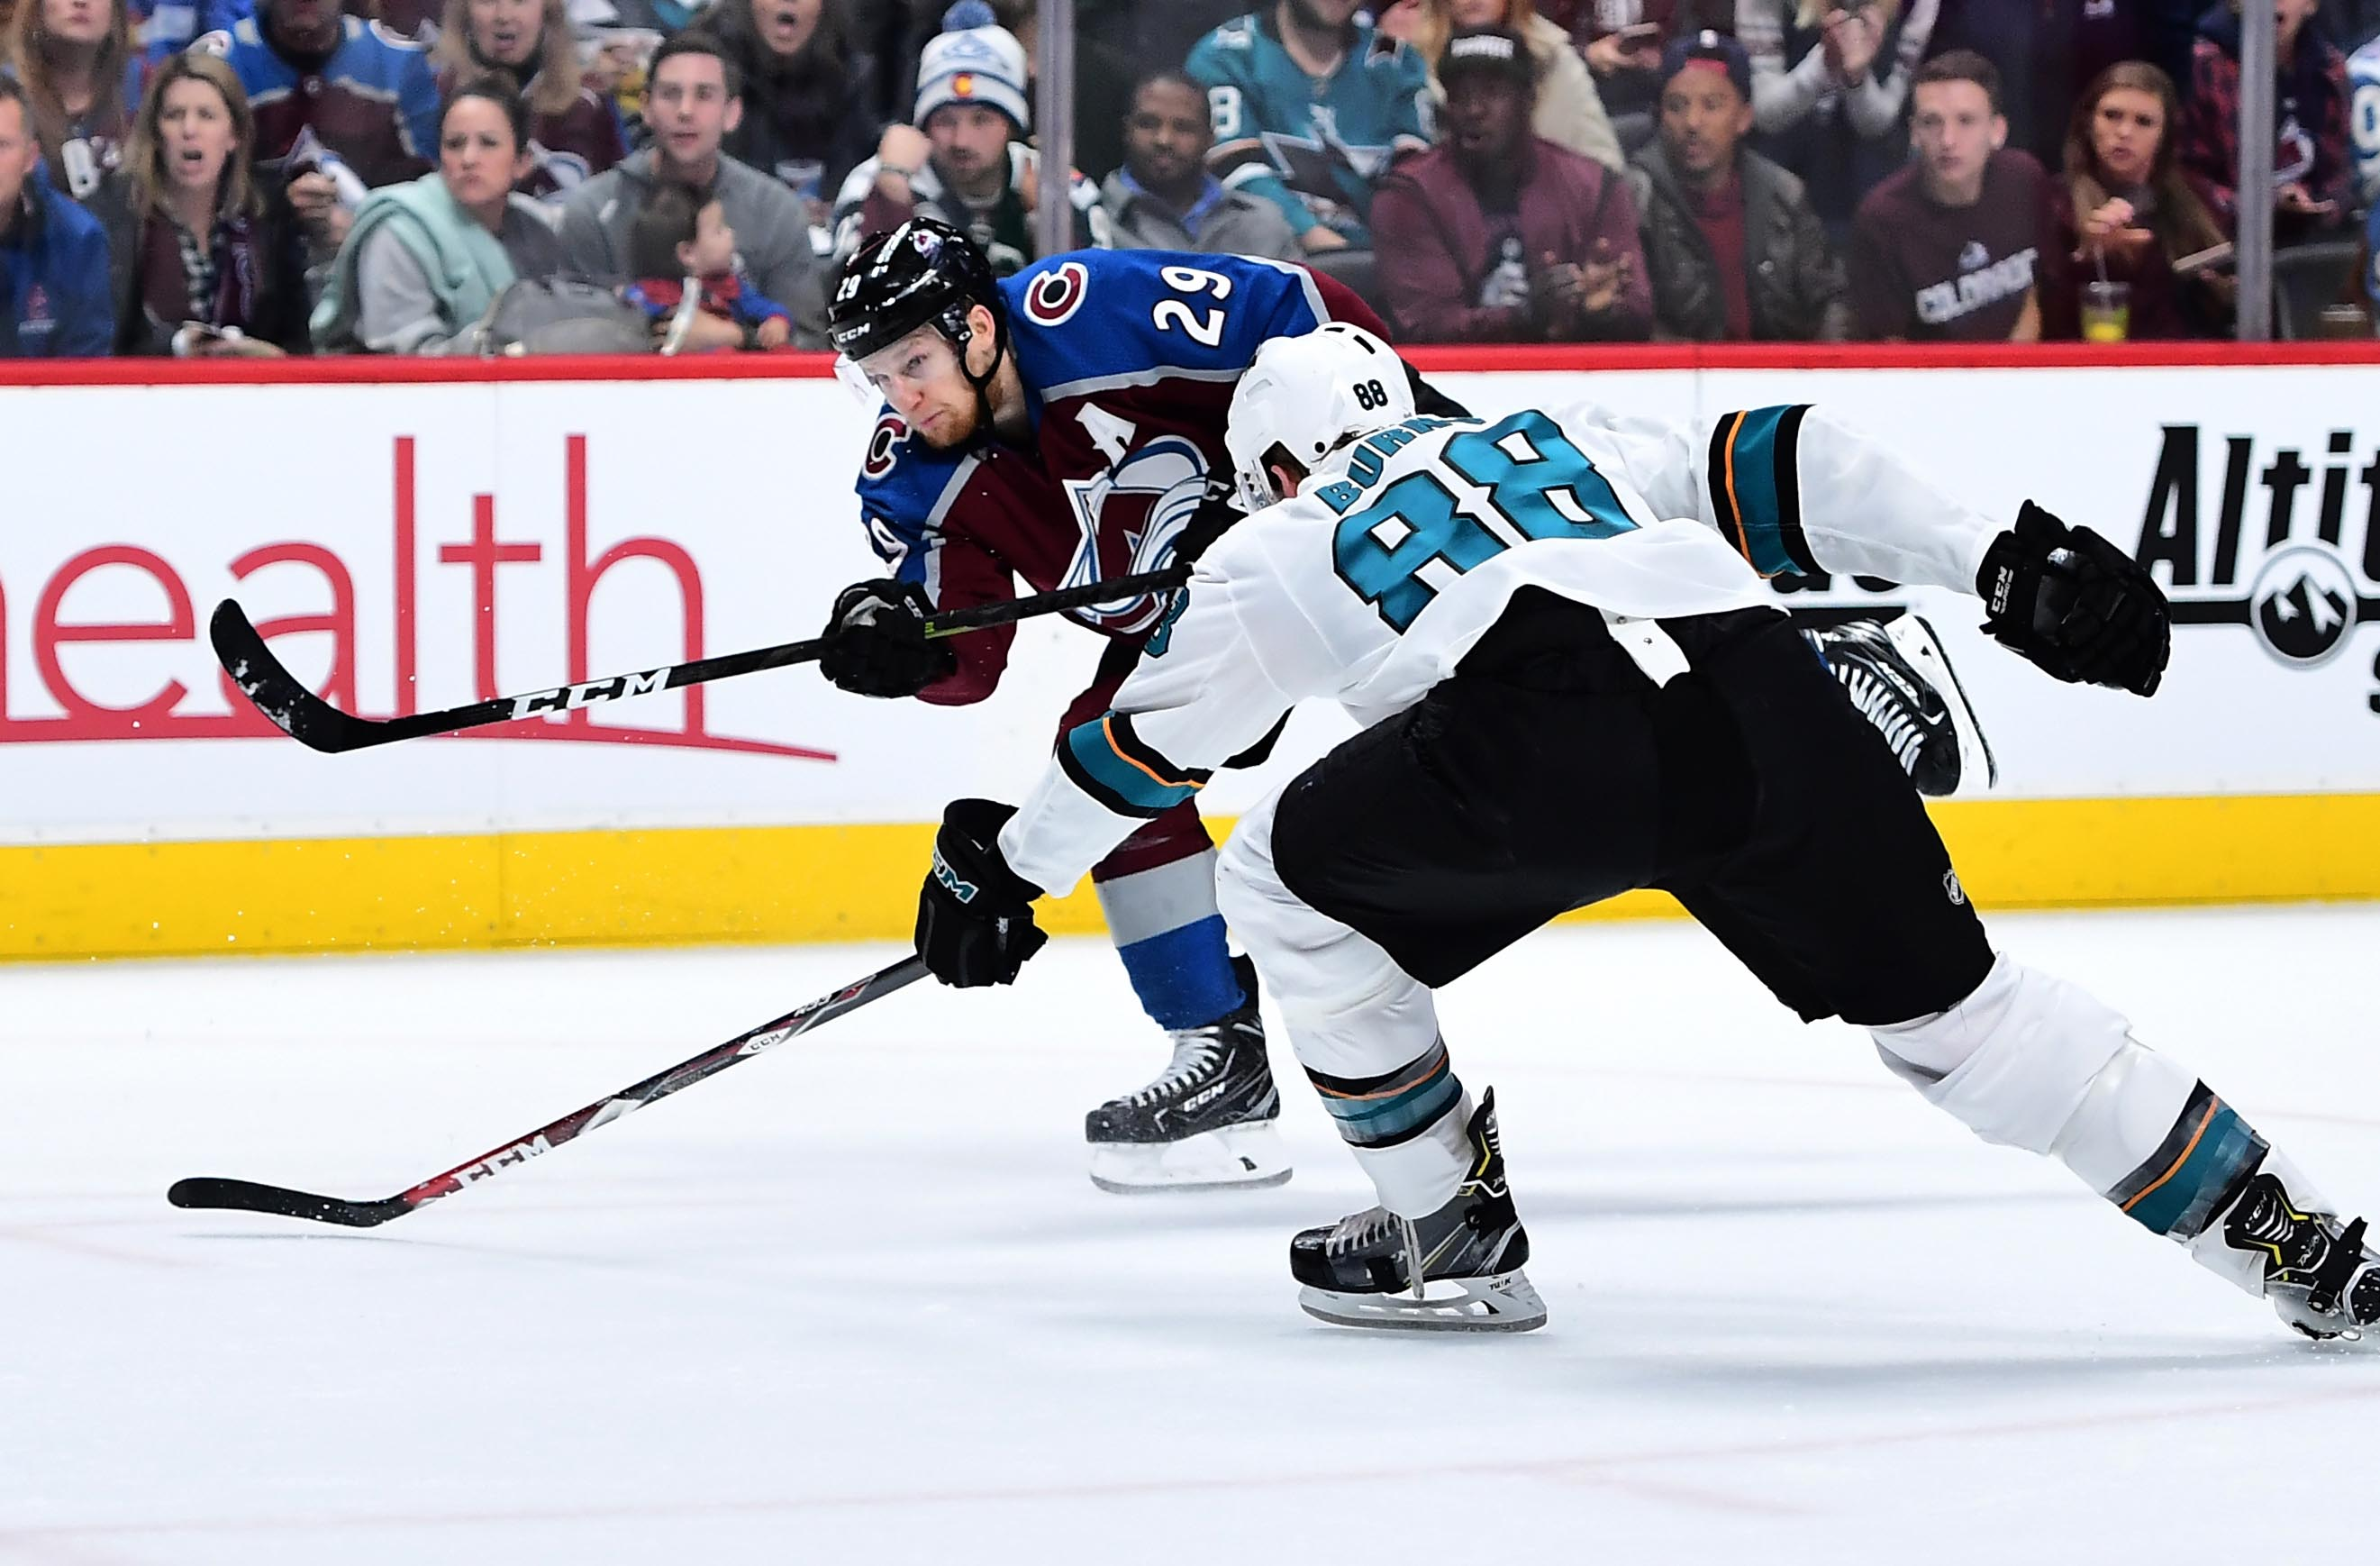 Colorado Avalanche center Nathan MacKinnon (29) shoots and scores past San Jose Sharks defenseman Brent Burns (88) in the second period in game three of the second round of the 2019 Stanley Cup Playoffs at Pepsi Center.